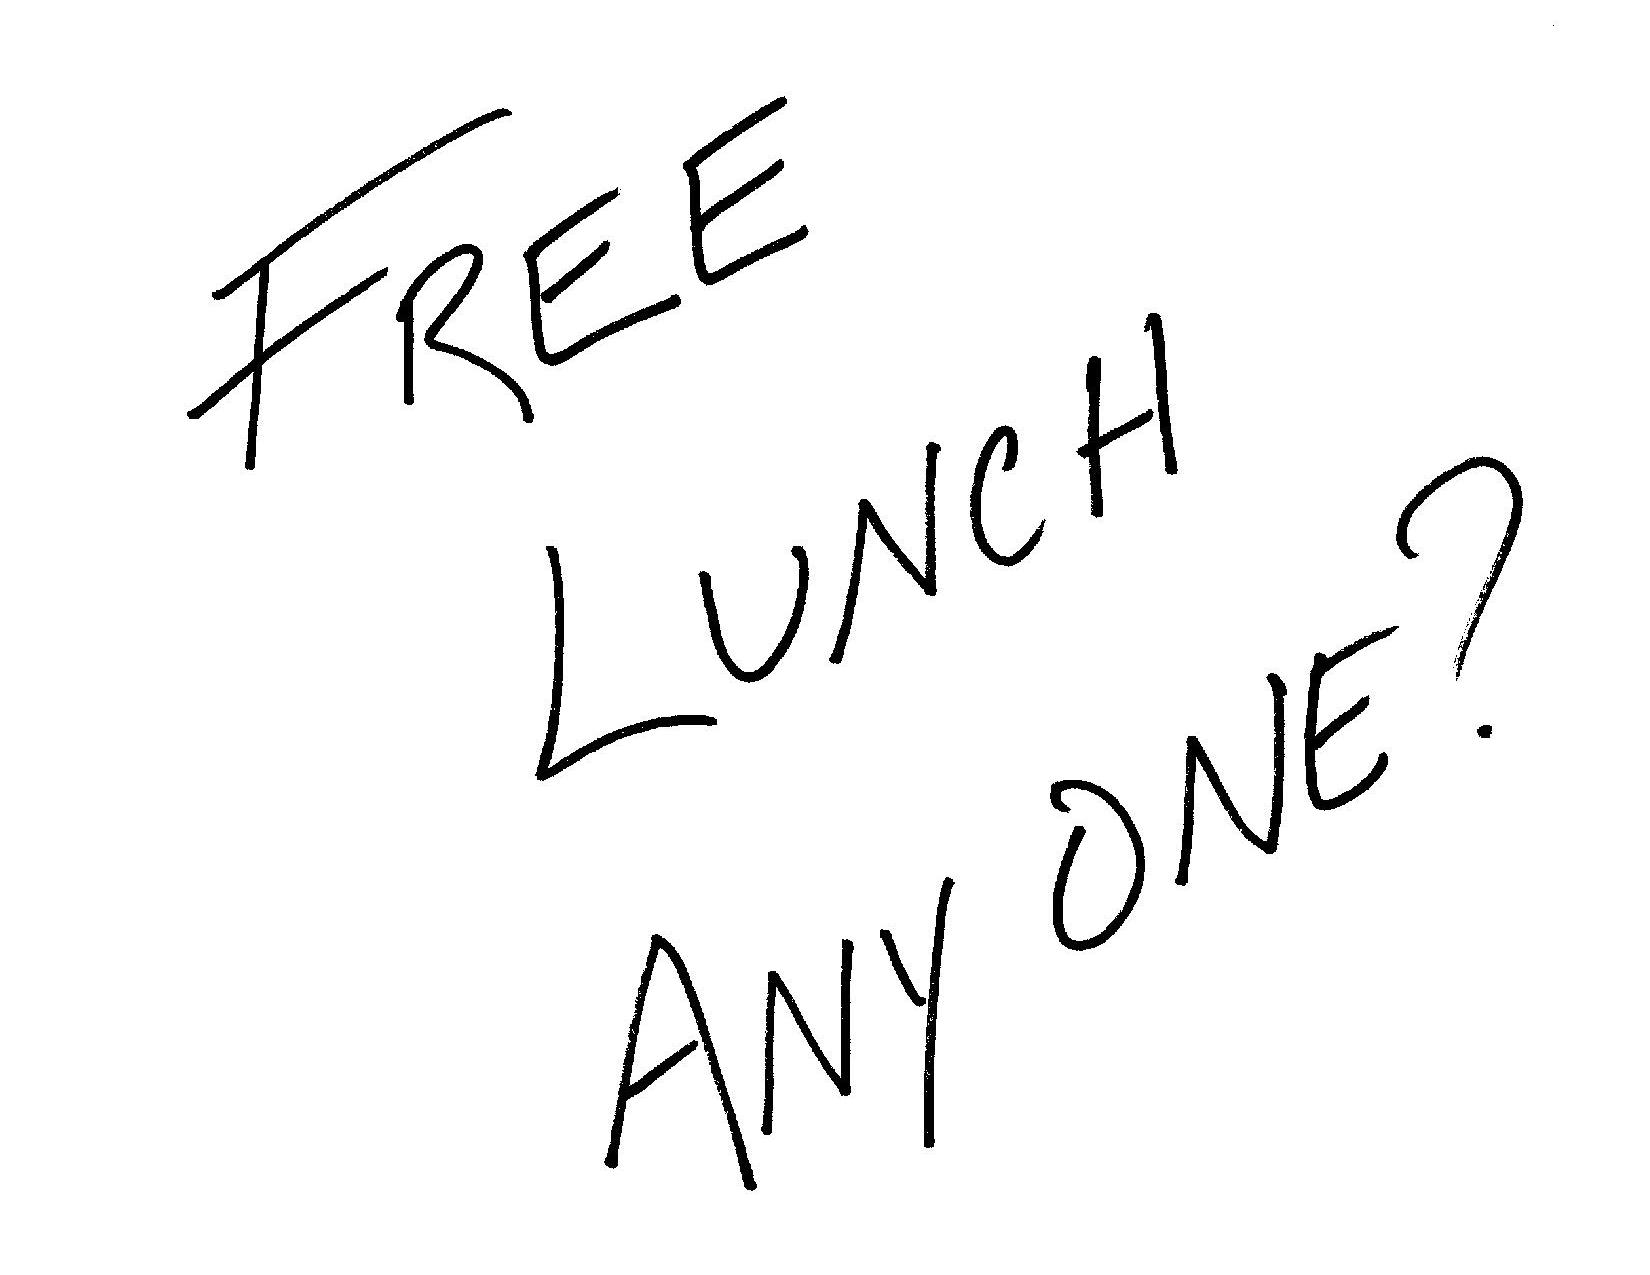 lunch coupon template notes template word lunch coupon clipart clipart kid that said our lives can be easily broken down into choices of ymocj6 clipart lunch coupon cliparts lunch coupon